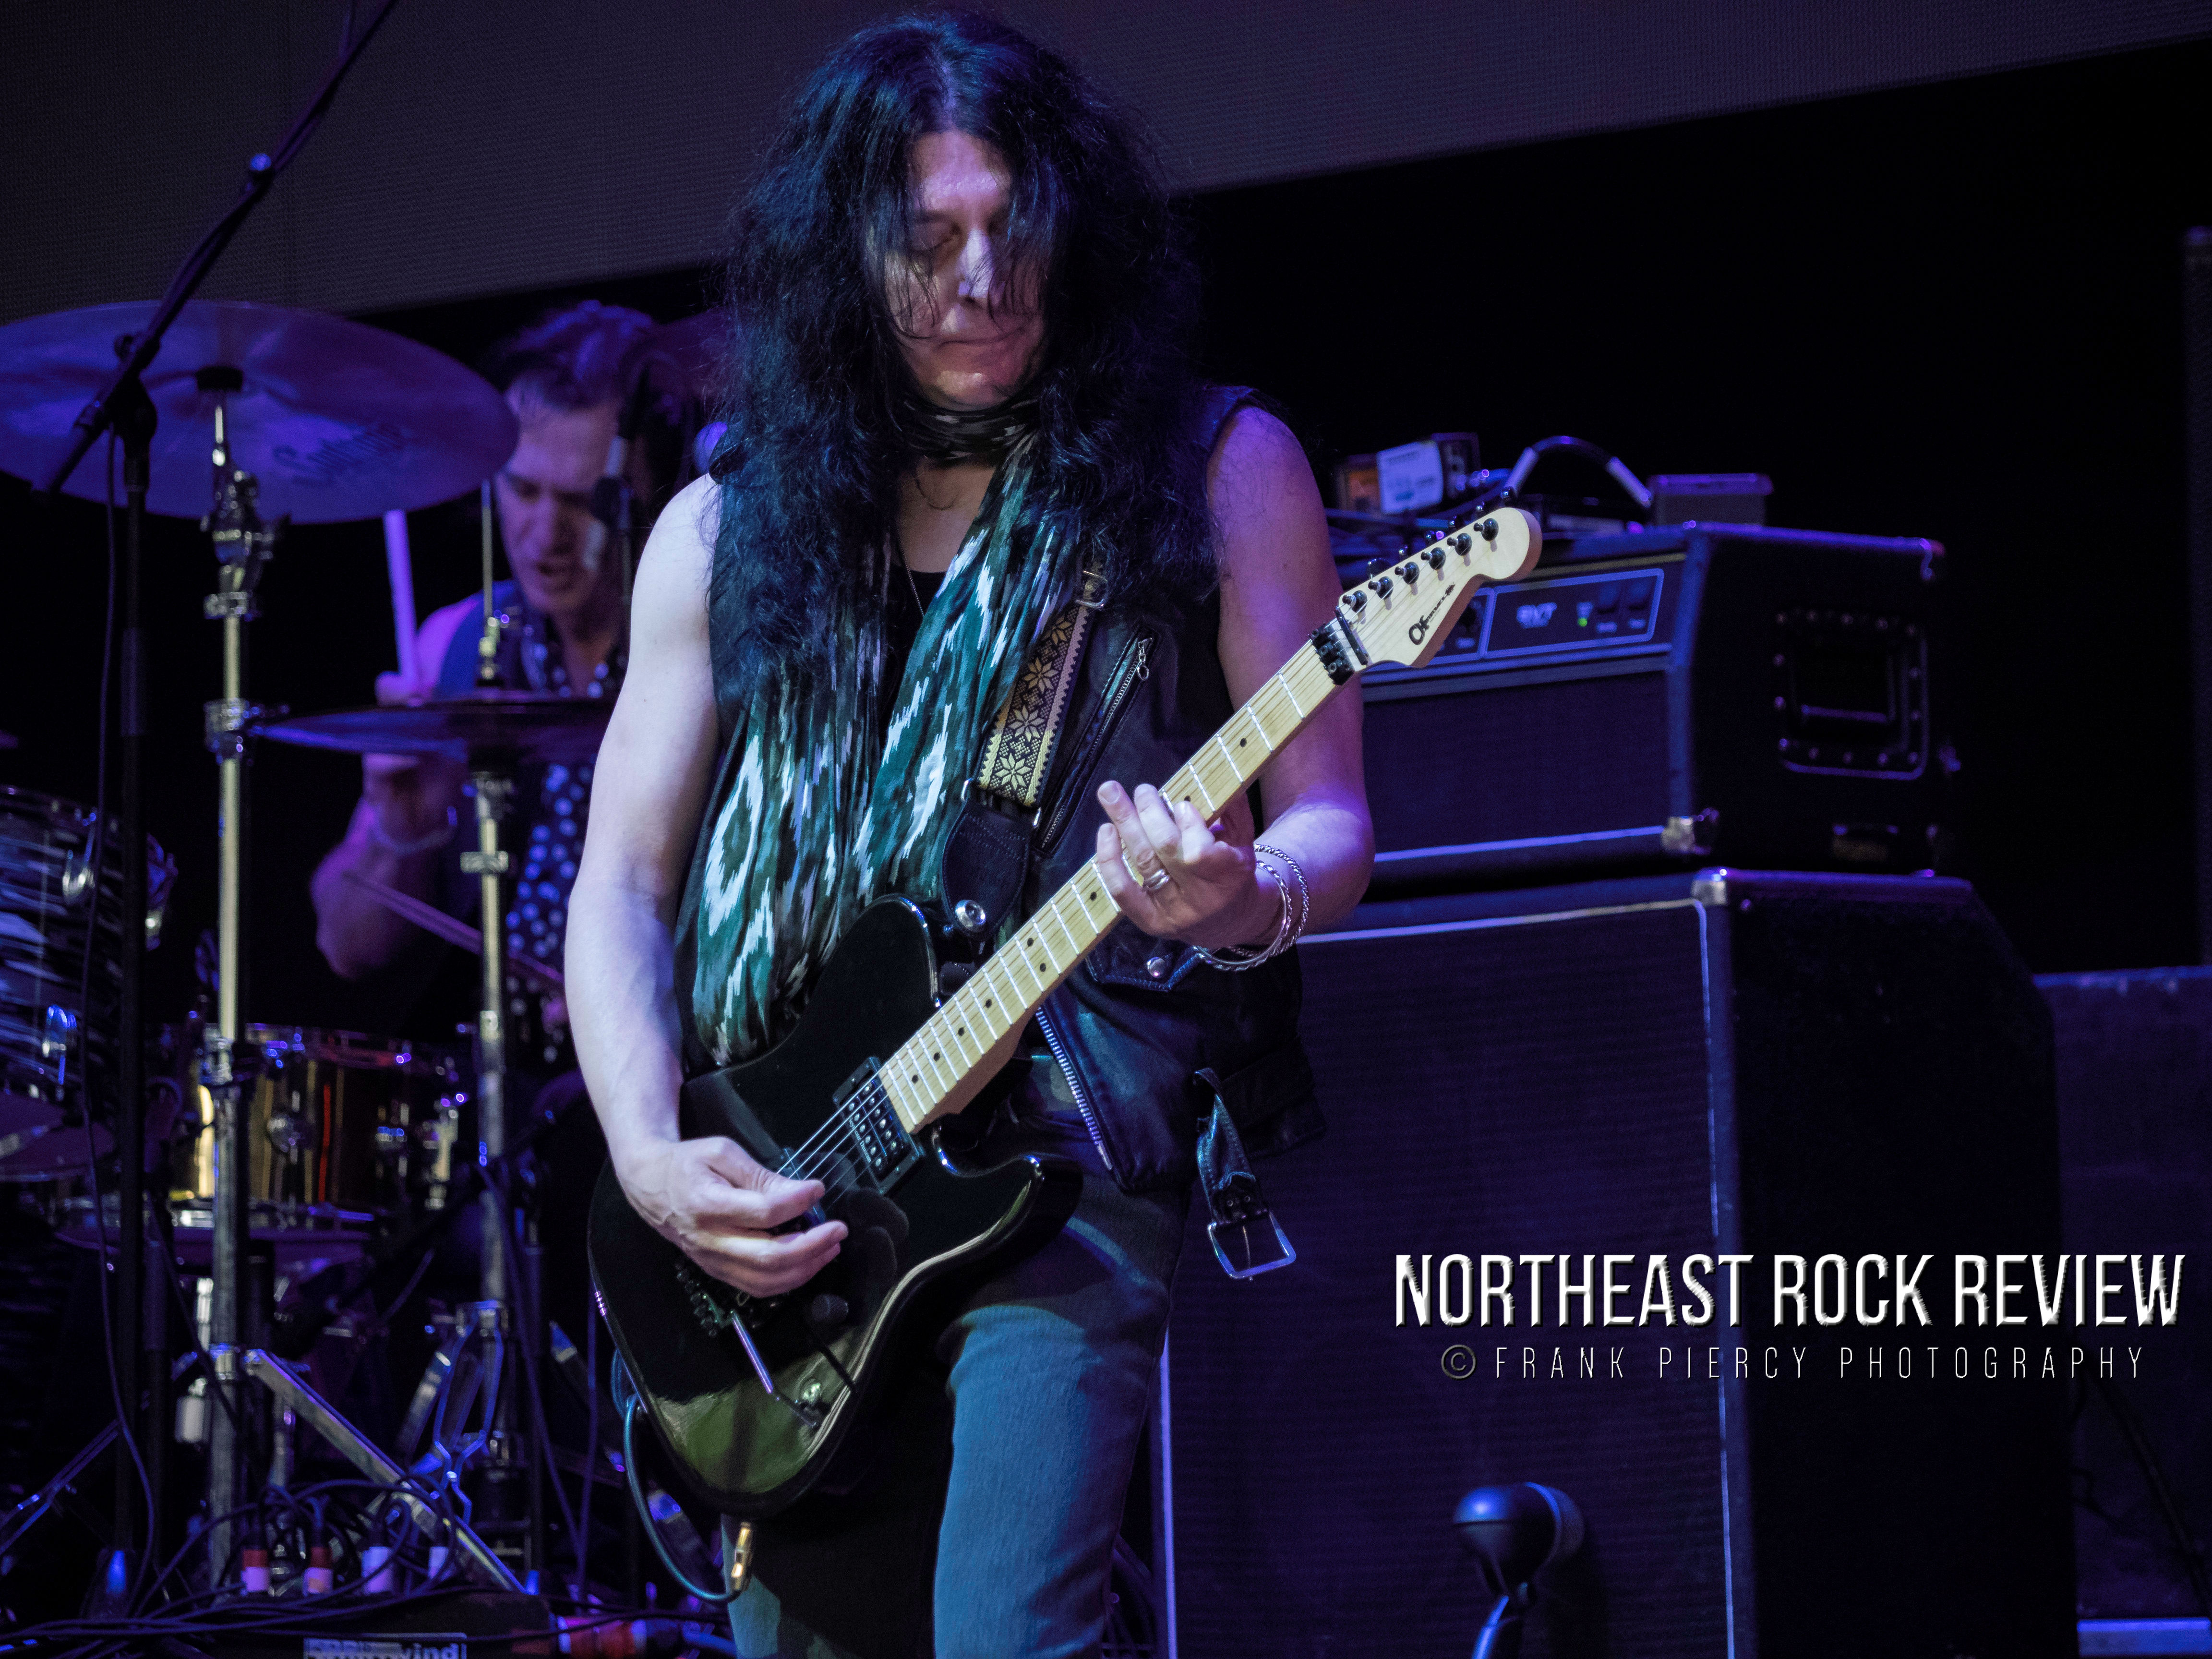 M3 ROCK FESTIVAL 2019 | Day 3 | Columbia, MD | 5 5 19 – NORTHEAST